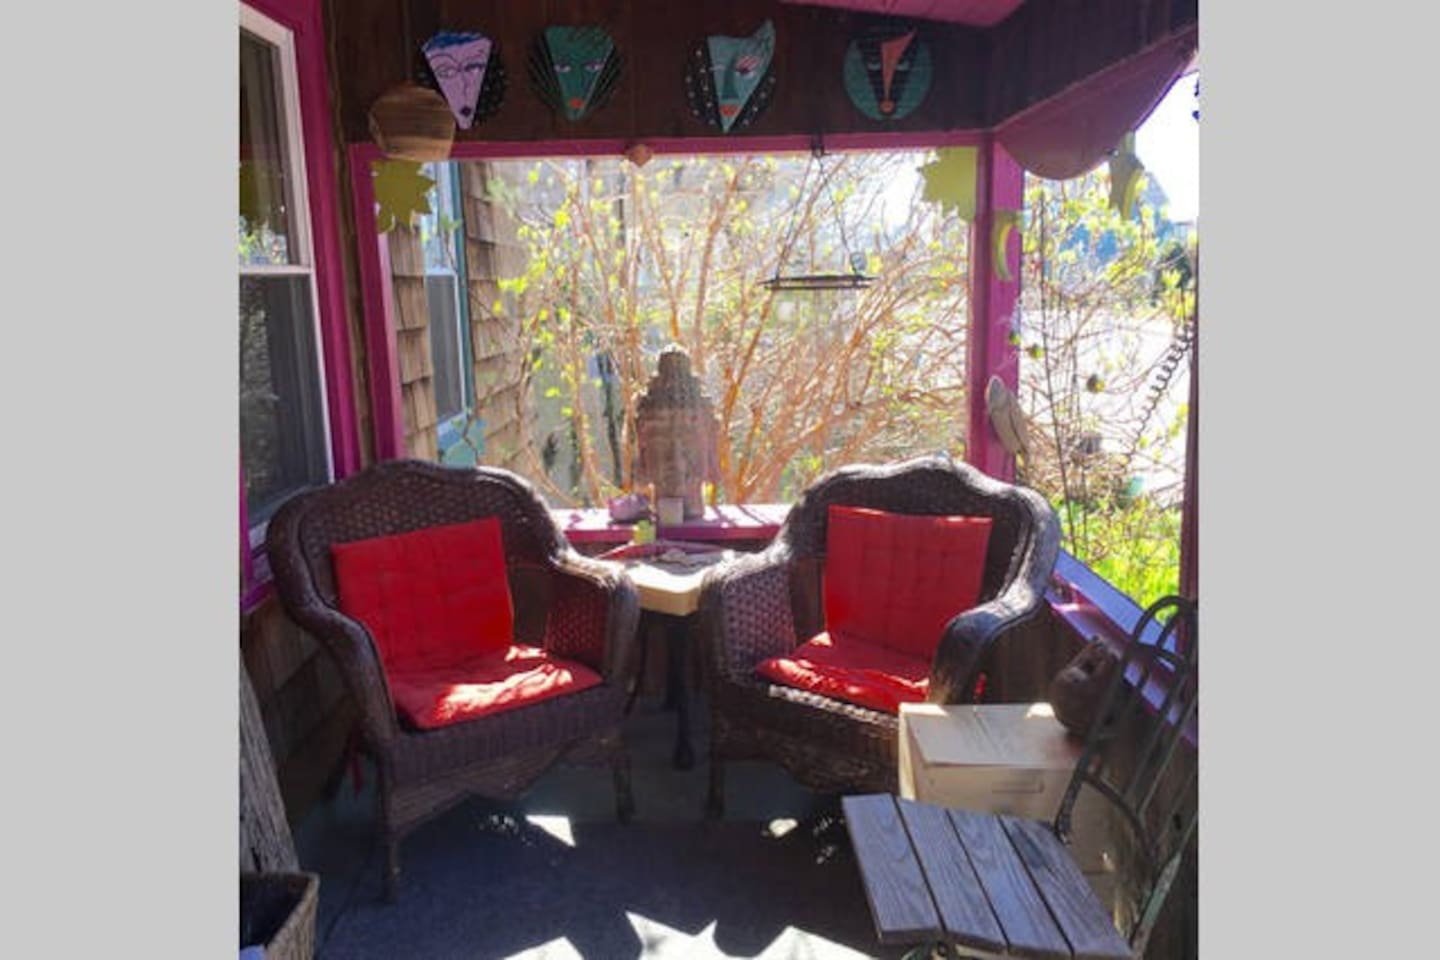 Enjoy coffee, a drink or just relax on the front porch